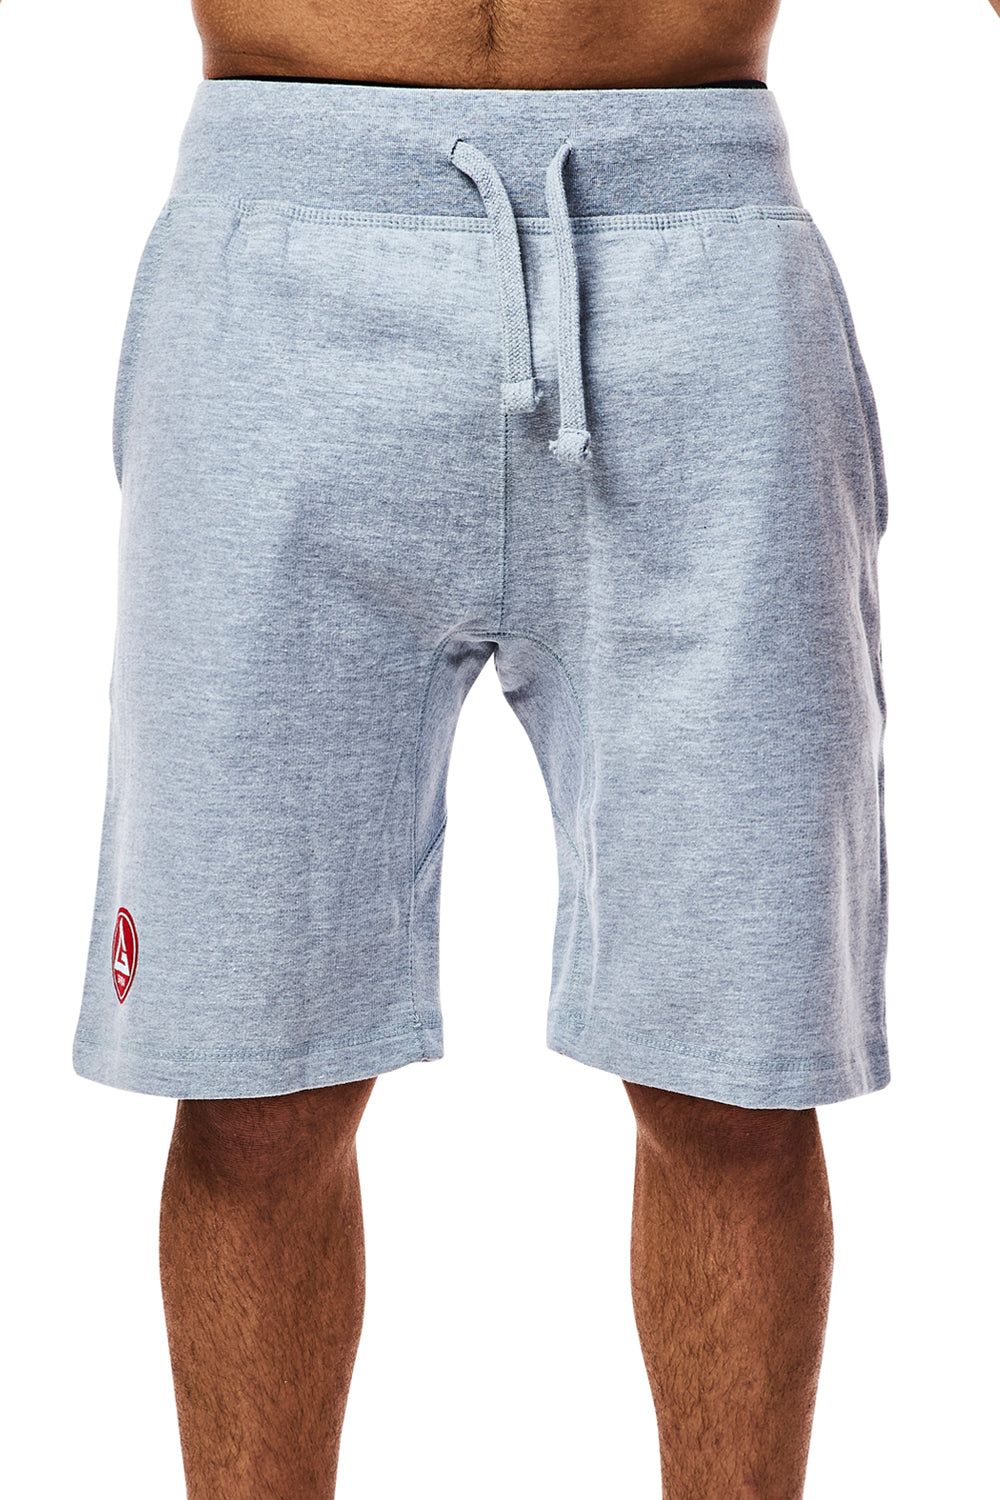 Icon Shorts - Heather